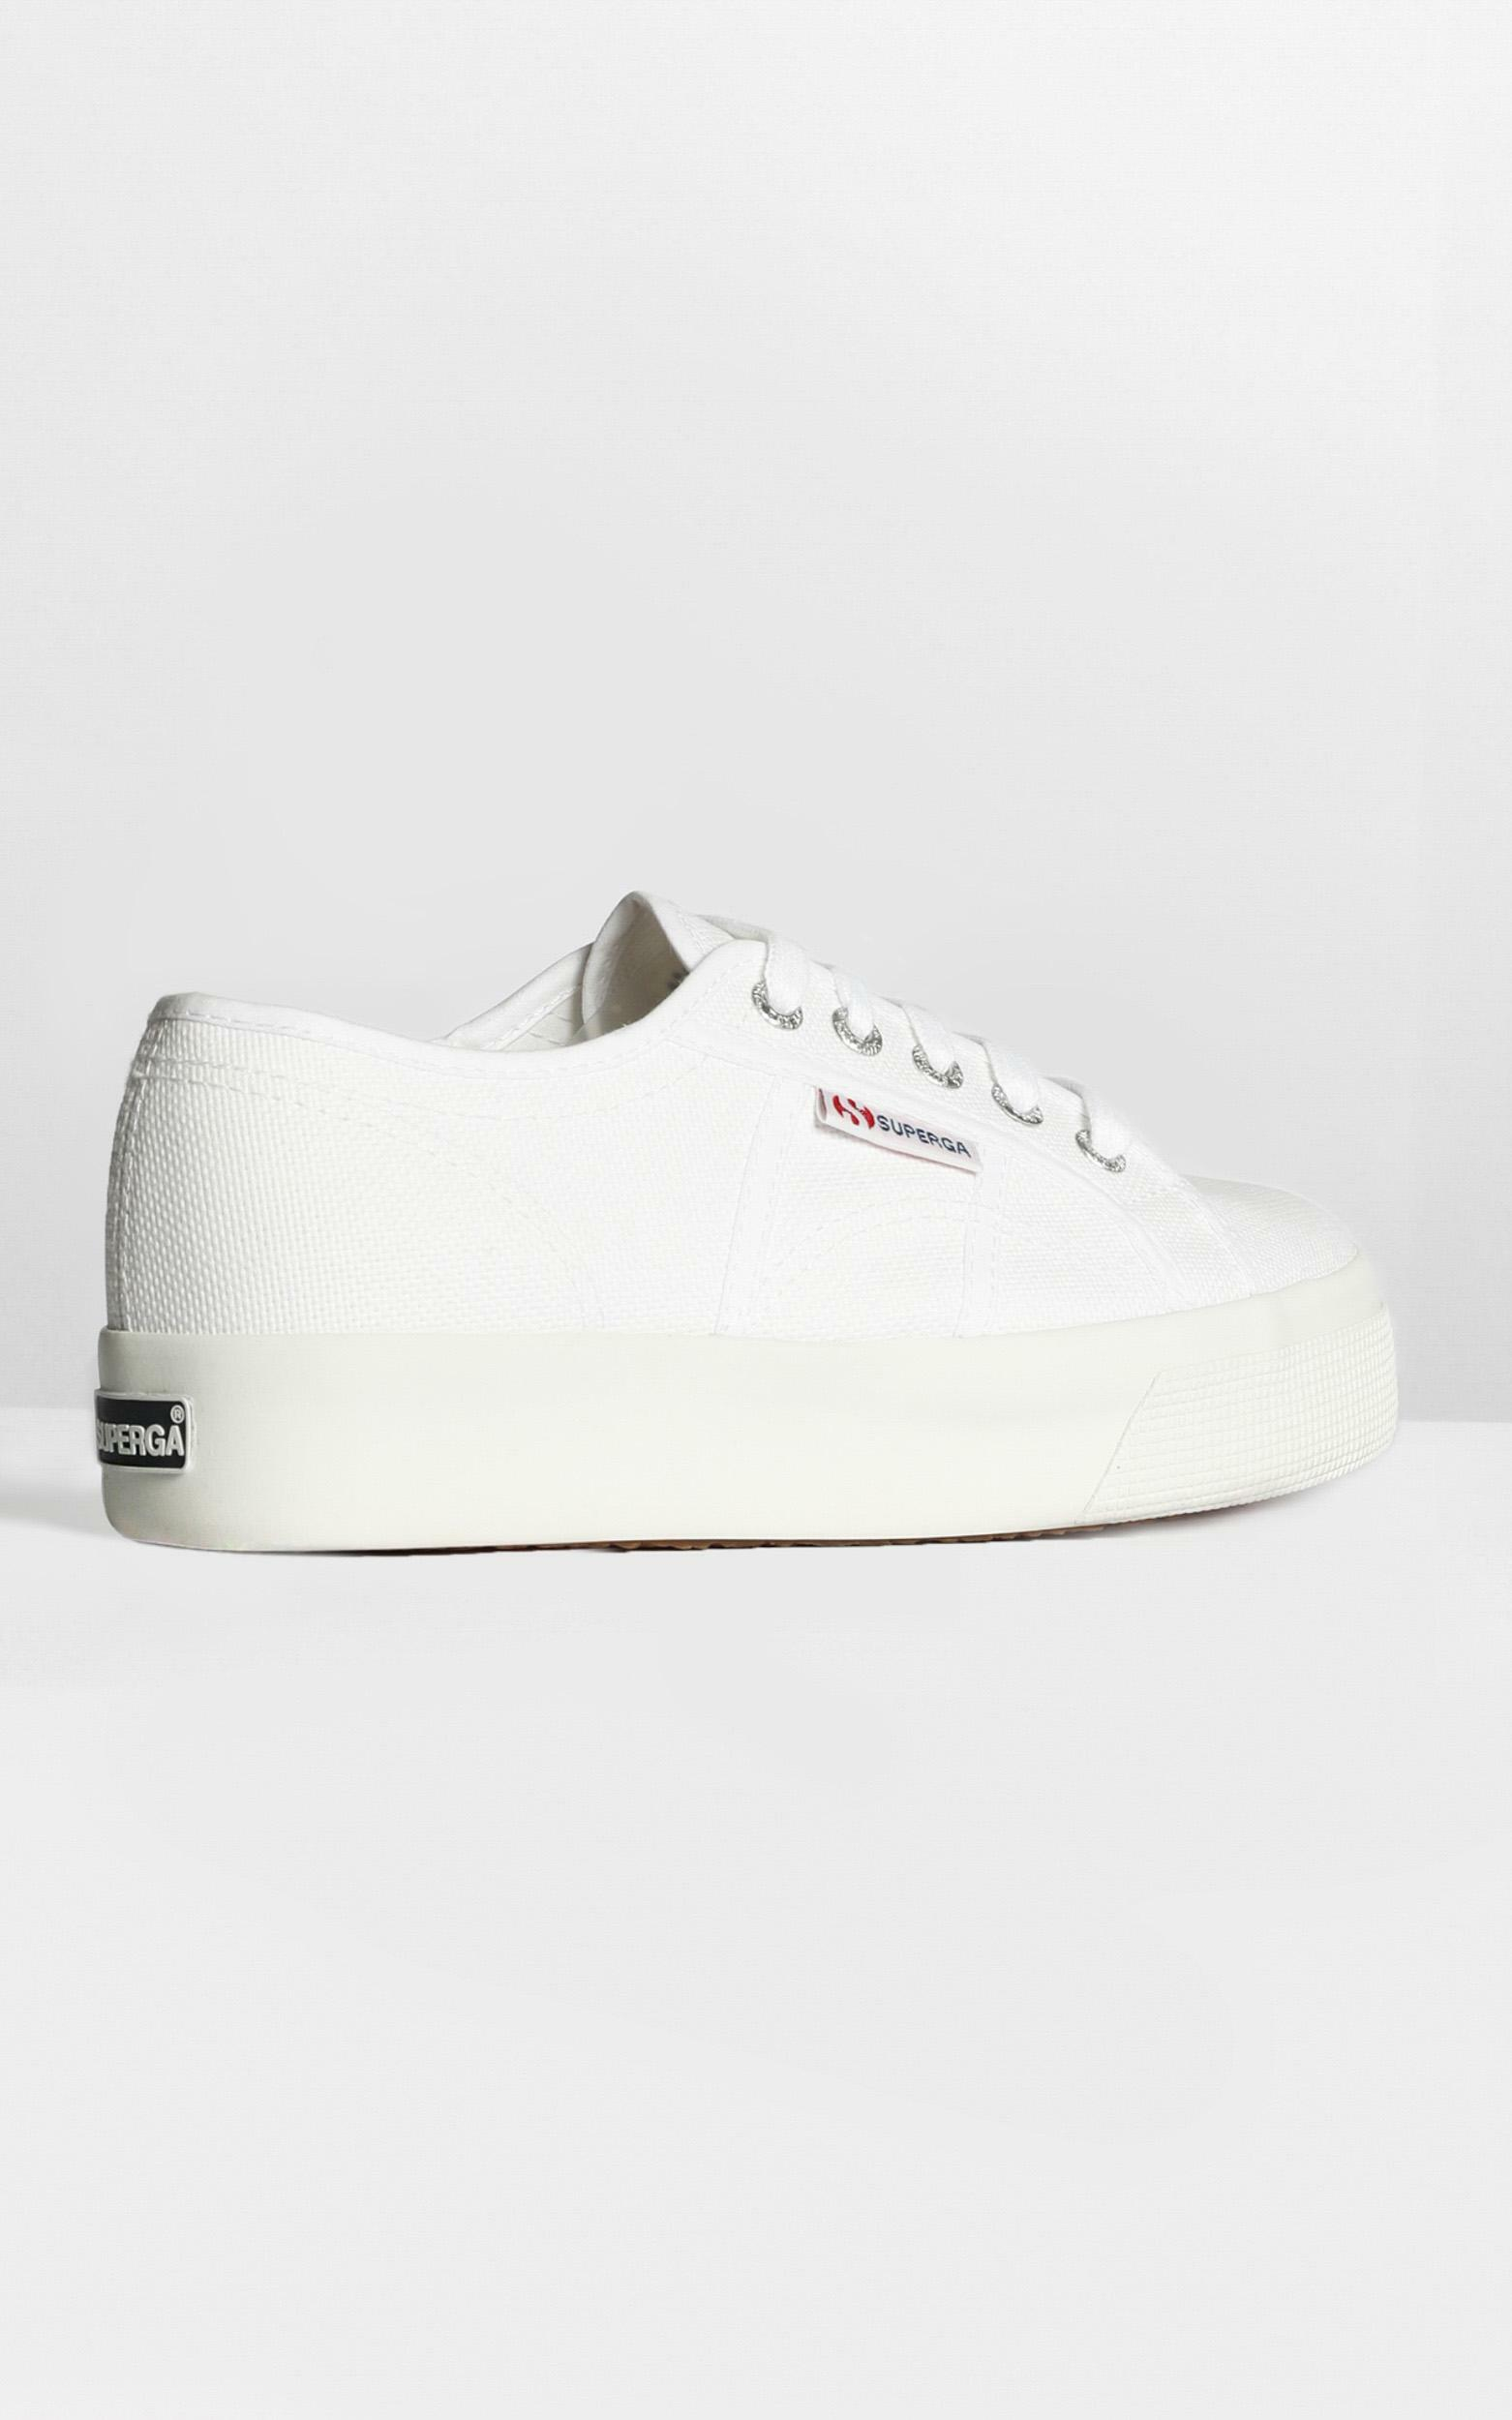 Superga- 2730 Cotu Sneakers in white canvas - 6, White, hi-res image number null